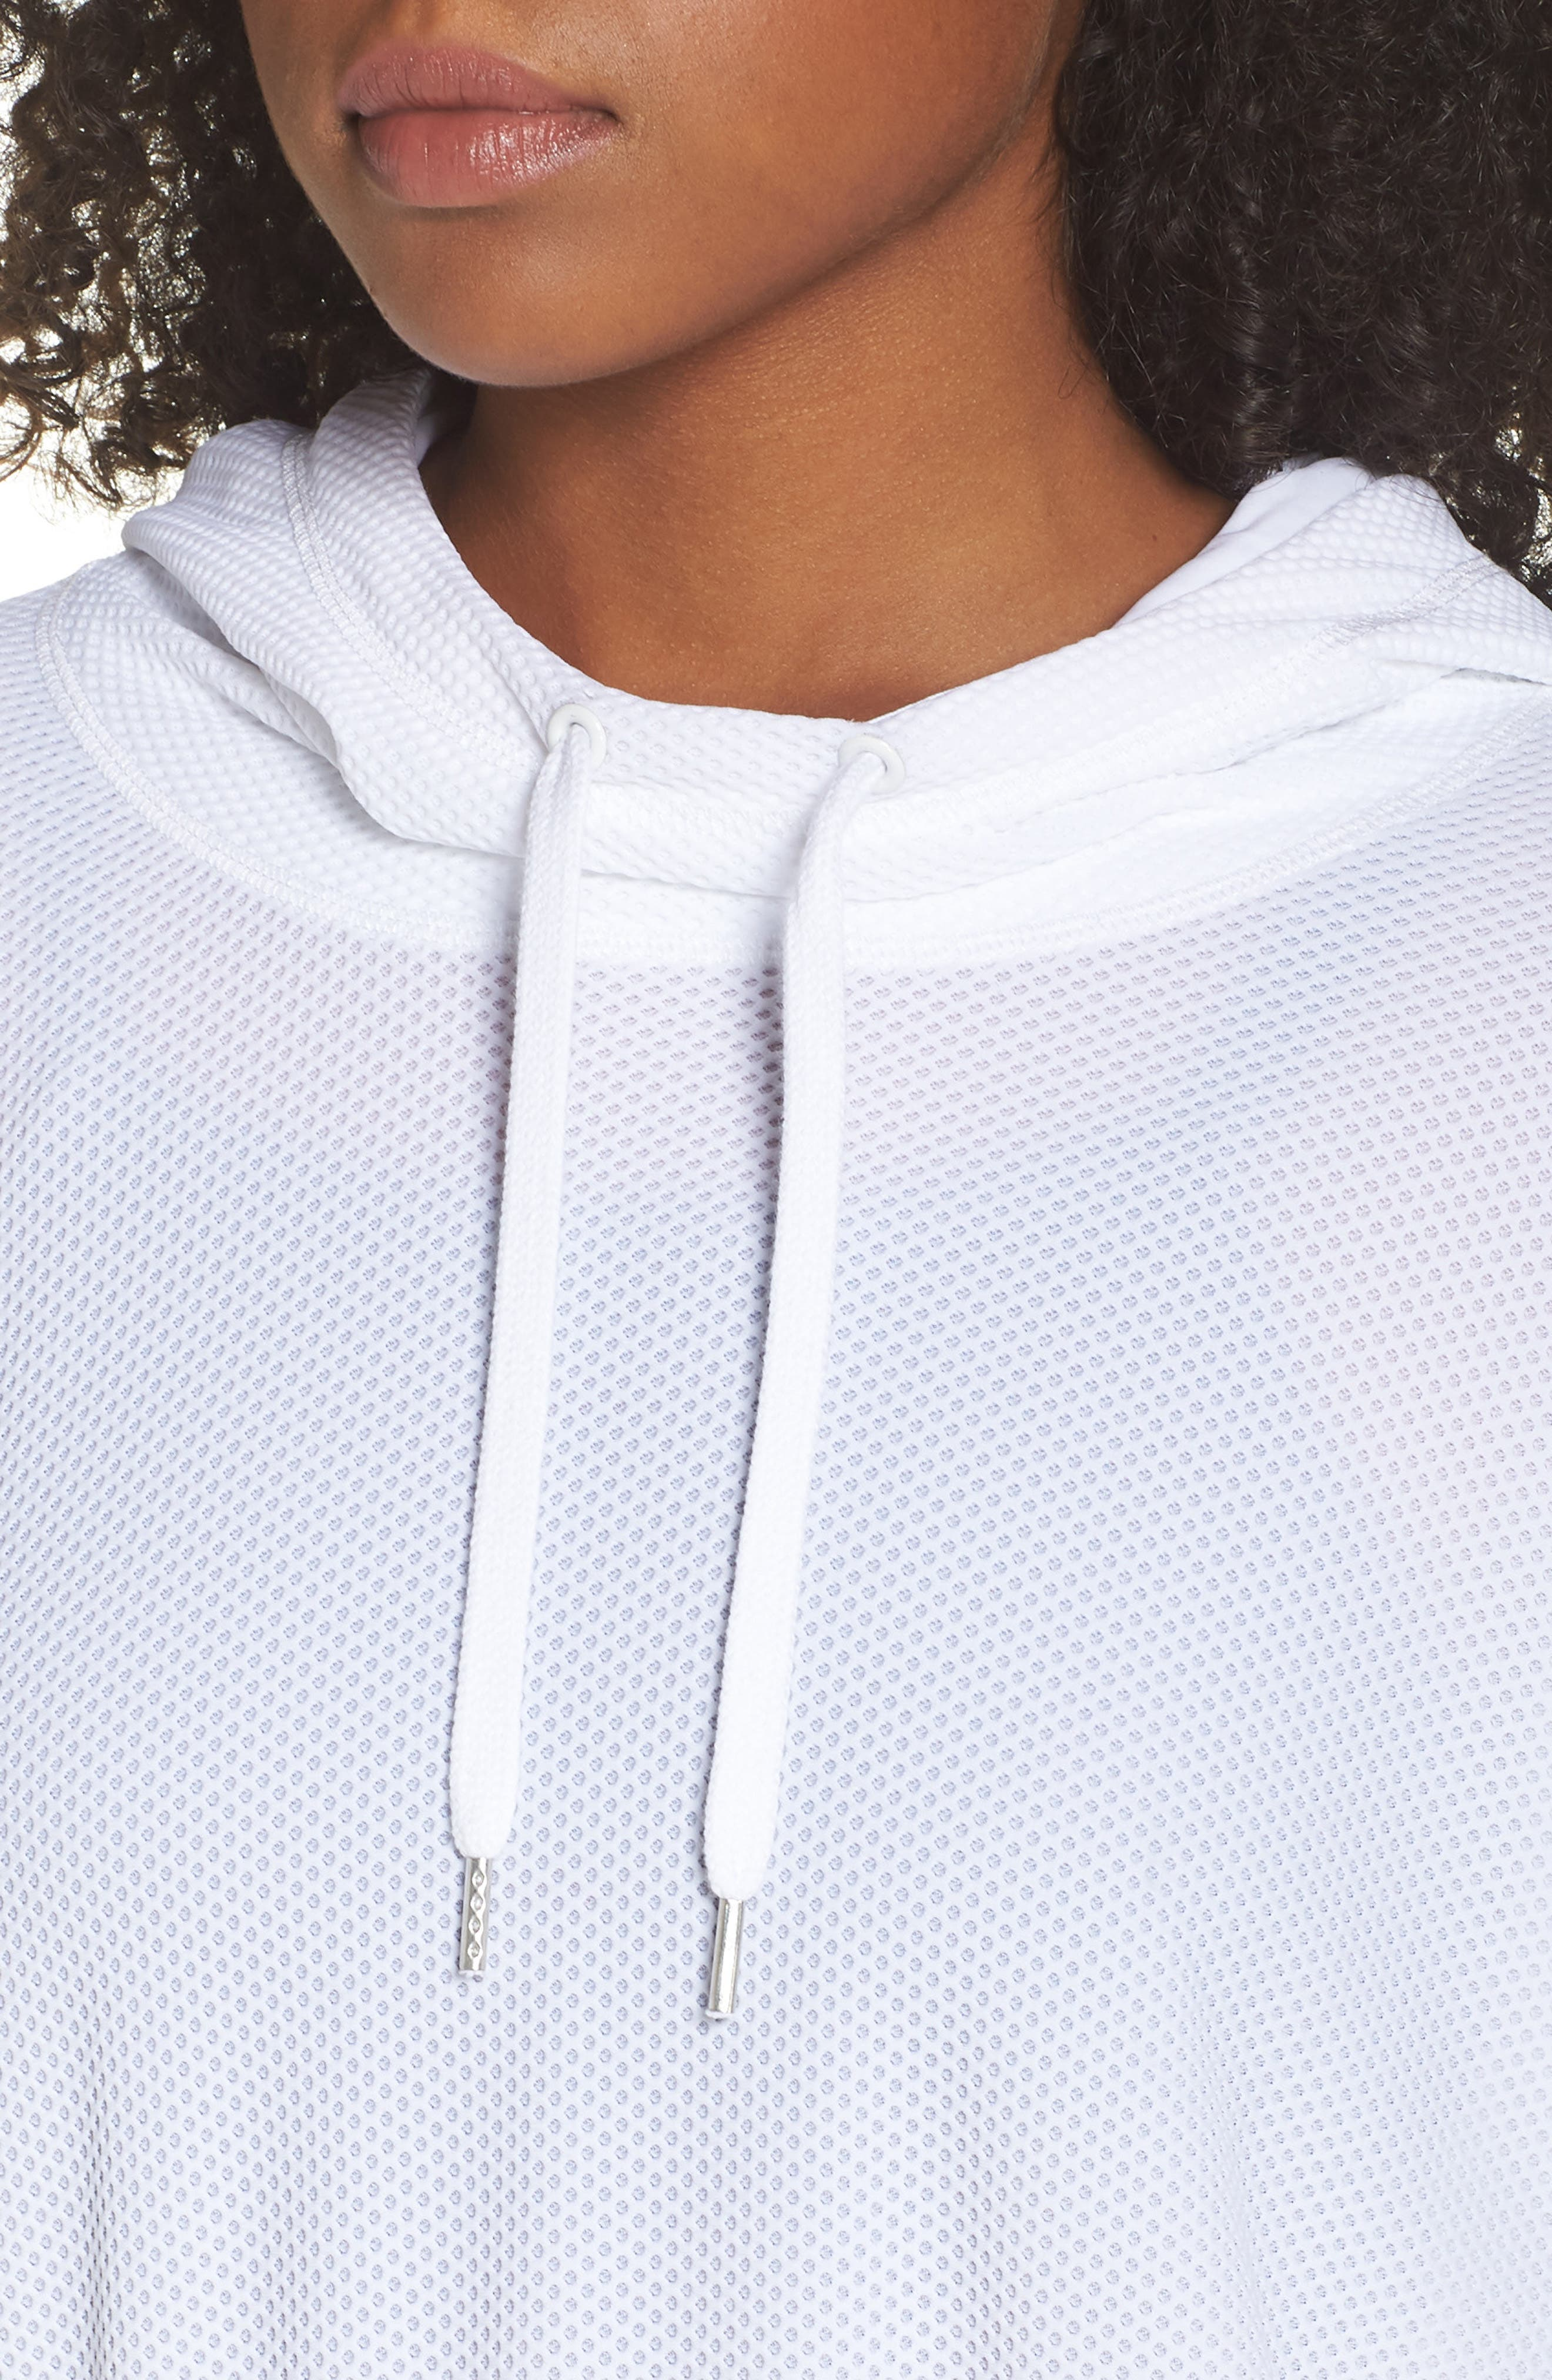 BoomBoom Athletica Bubble Mesh Hoodie,                             Alternate thumbnail 4, color,                             100